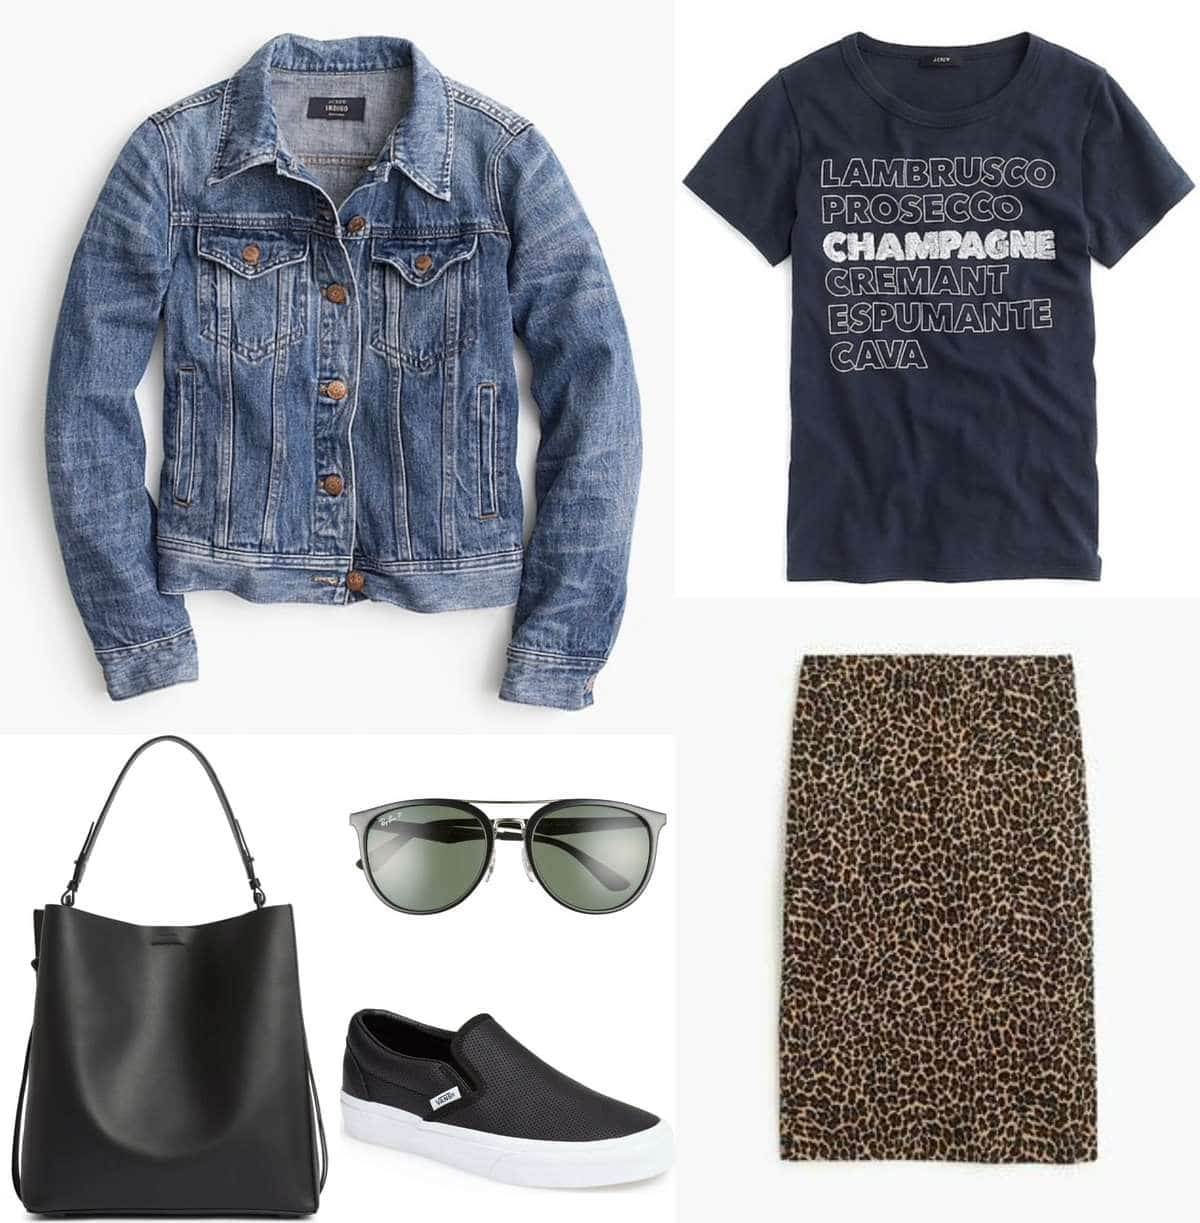 navy with black and leopard 1